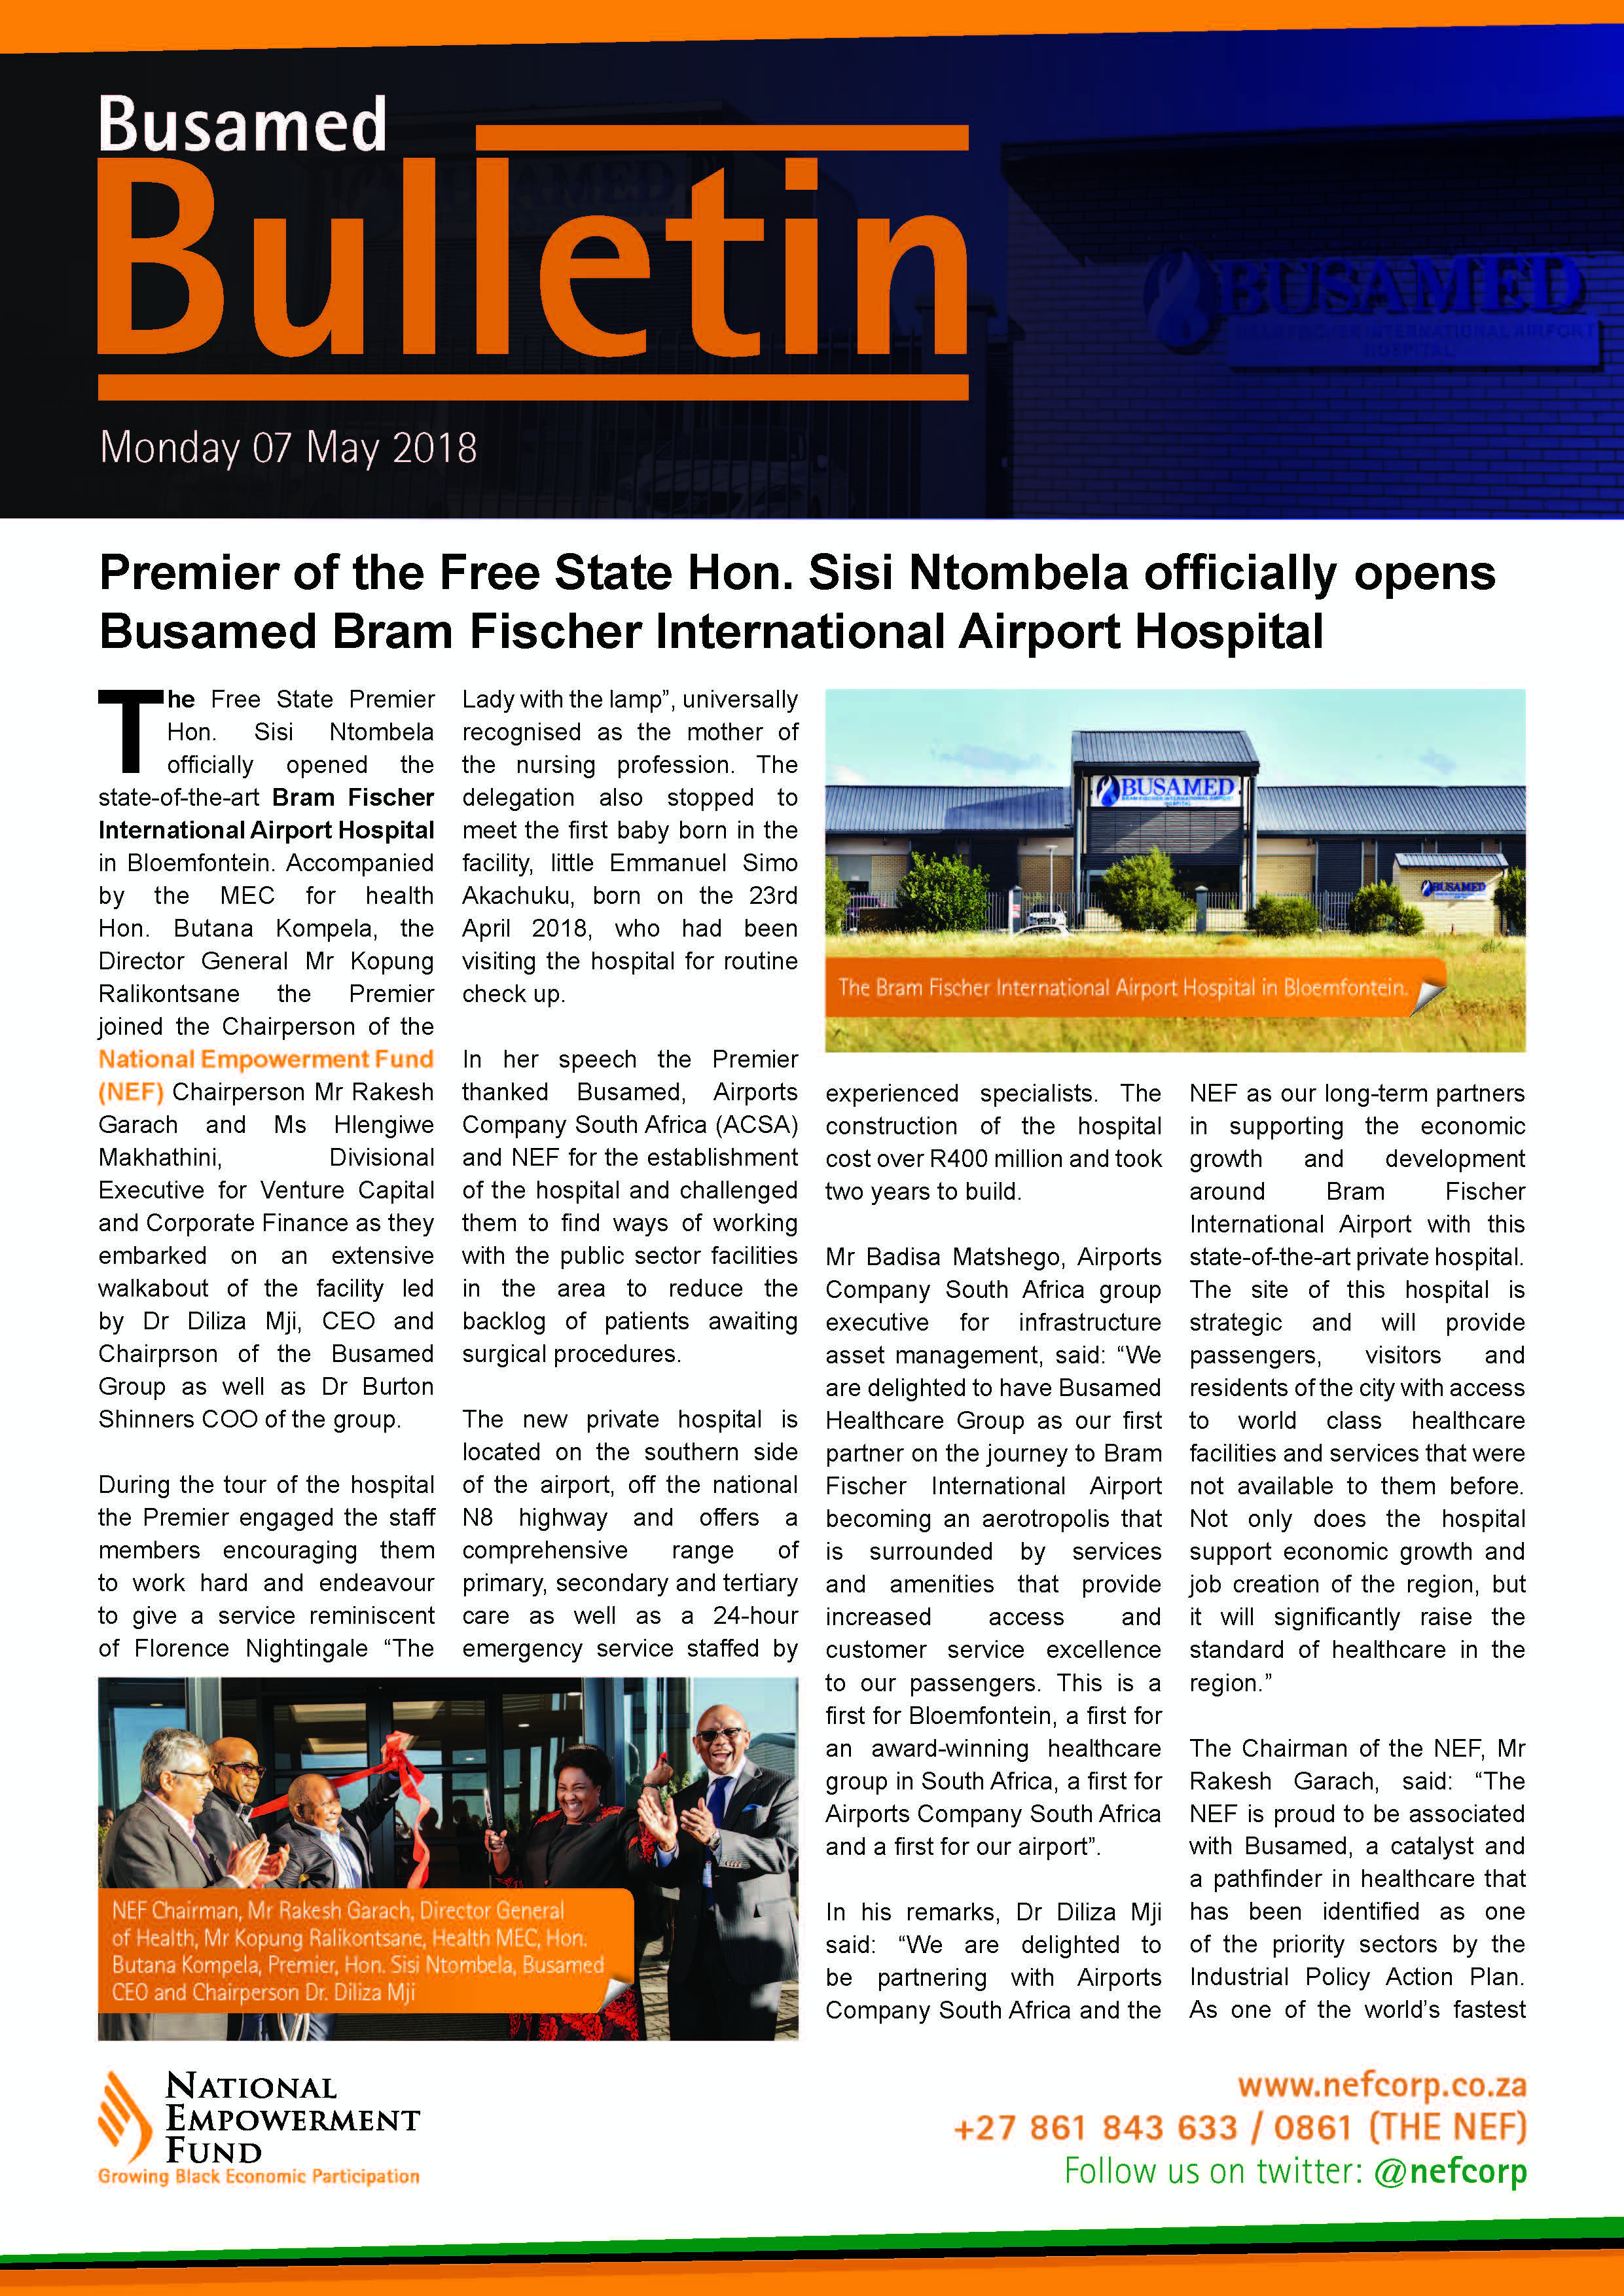 Premier Of The Free State Hon. Sisi Ntombela Officially Opens Busamed Bram Fischer International Airport Hospital